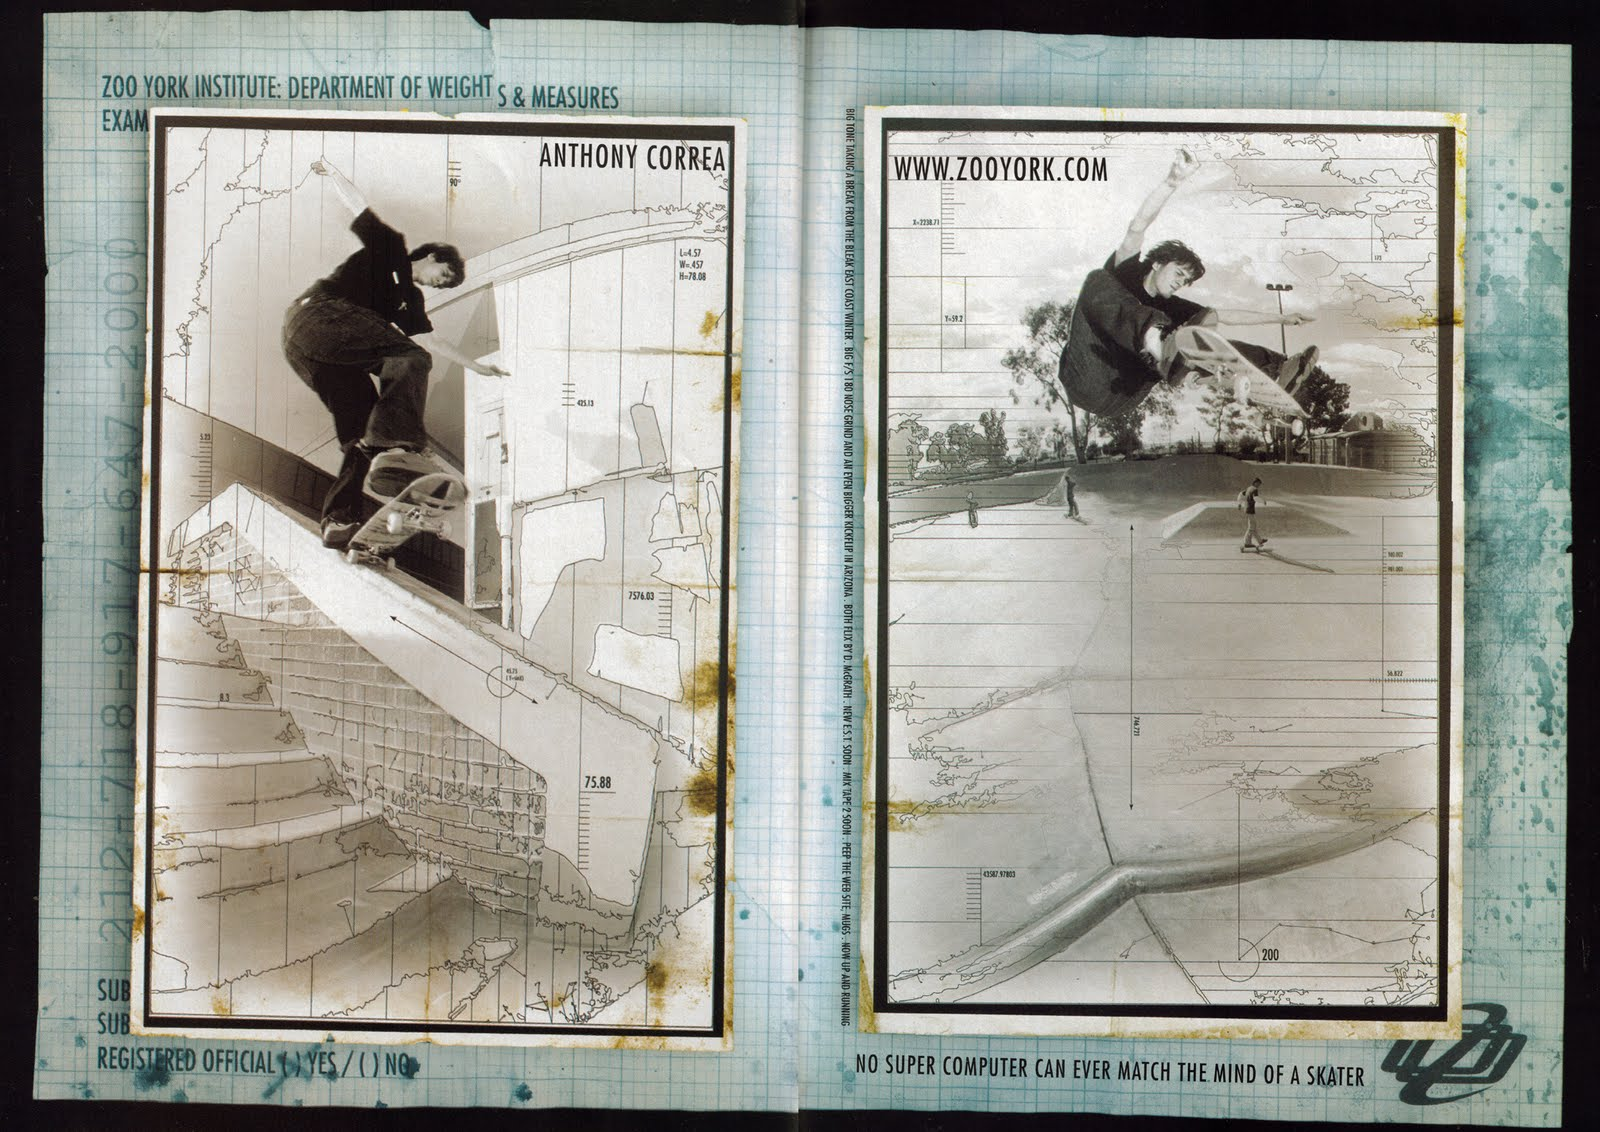 Locals Only: OG Skater Anthony Correa and Houston's A-front